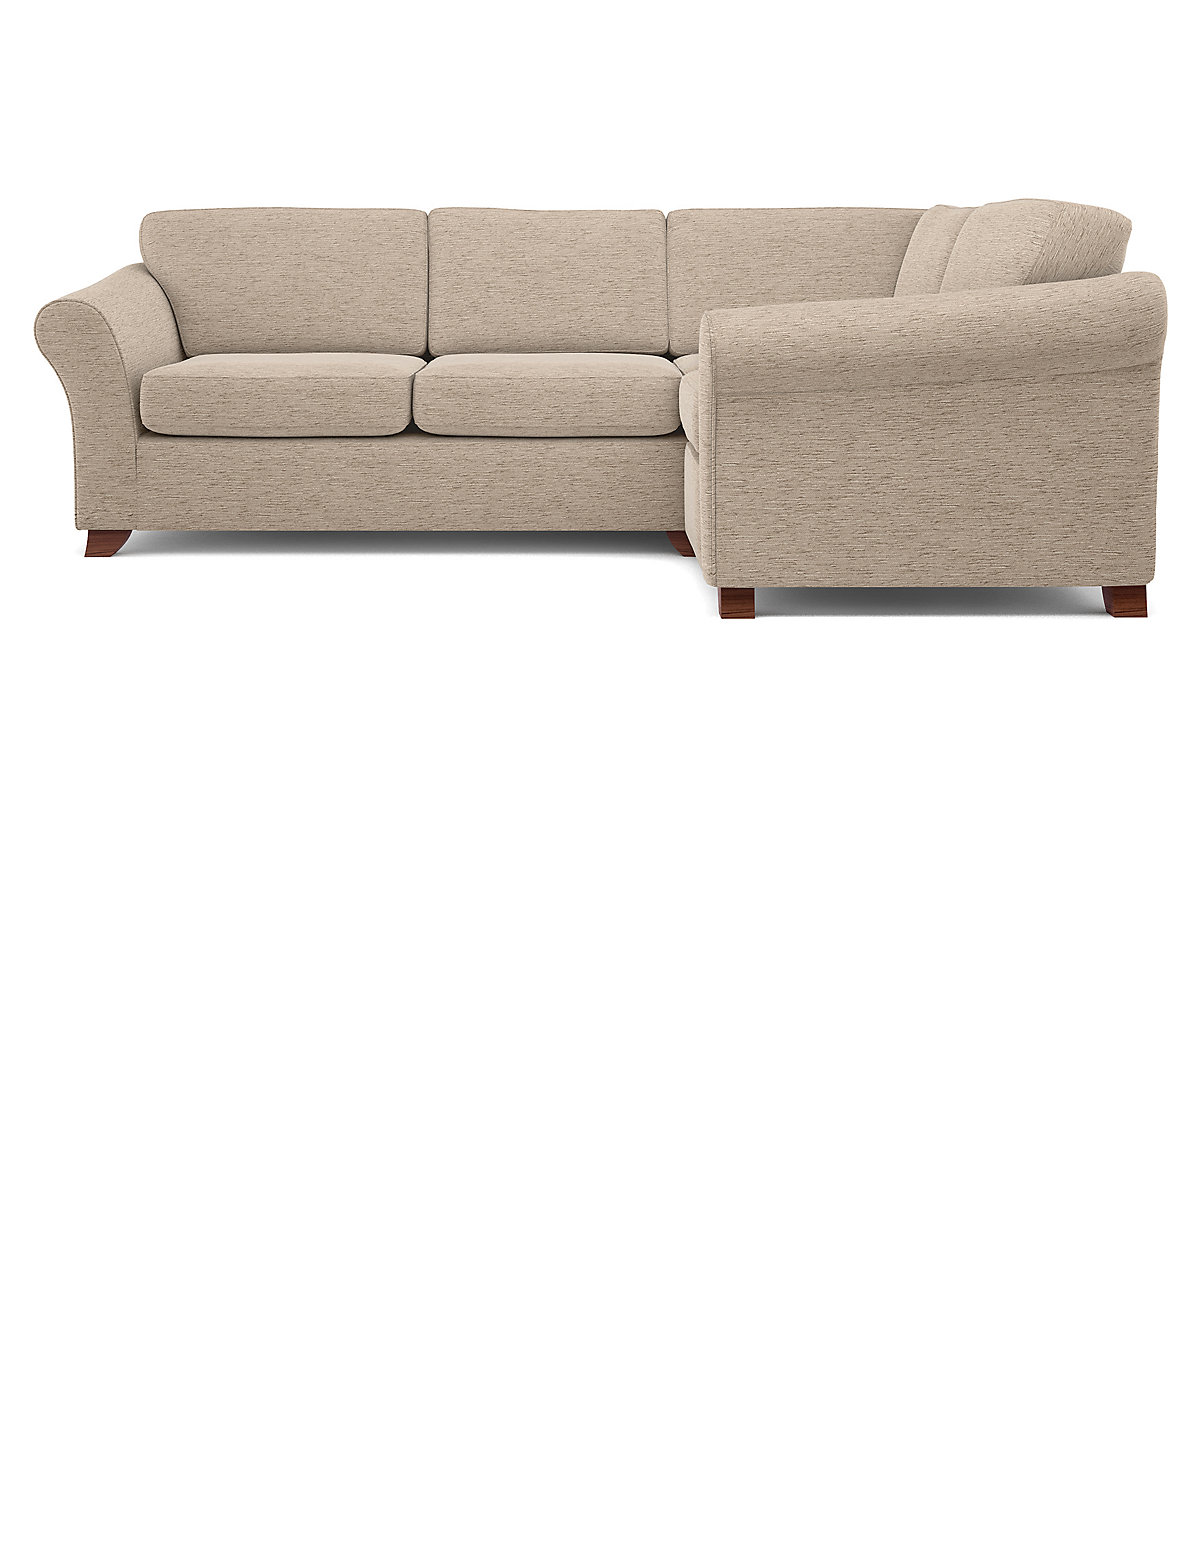 Image of Abbey Firm Small Corner Sofa (Right-Hand)